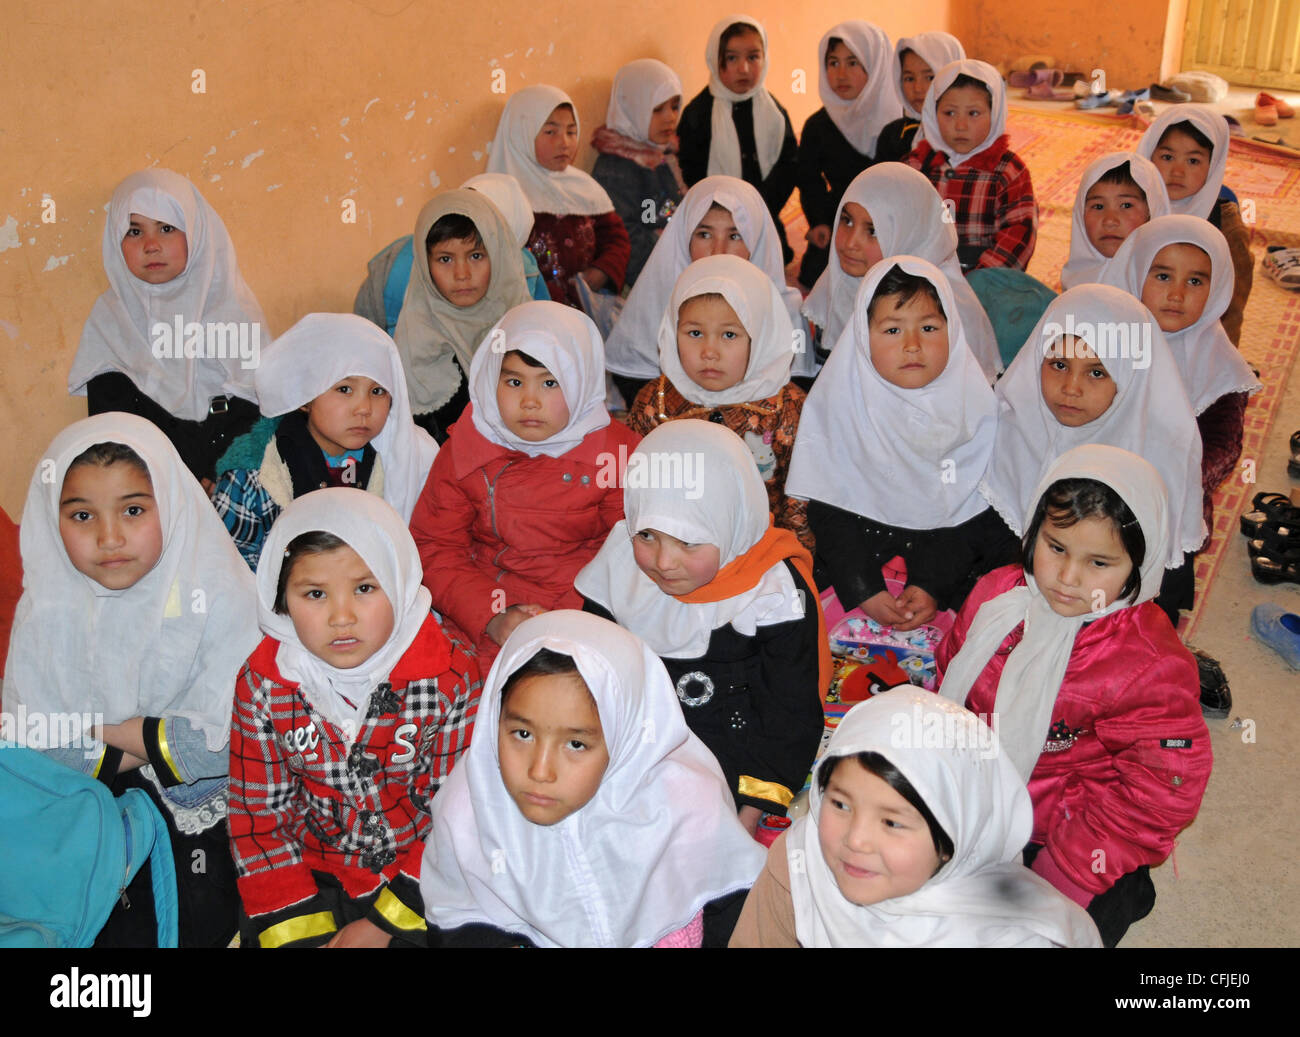 Young Afghan girls sit for classes on the hallway floor of the Aliabad School near Mazar-e-Sharif, Afghanistan - Stock Image